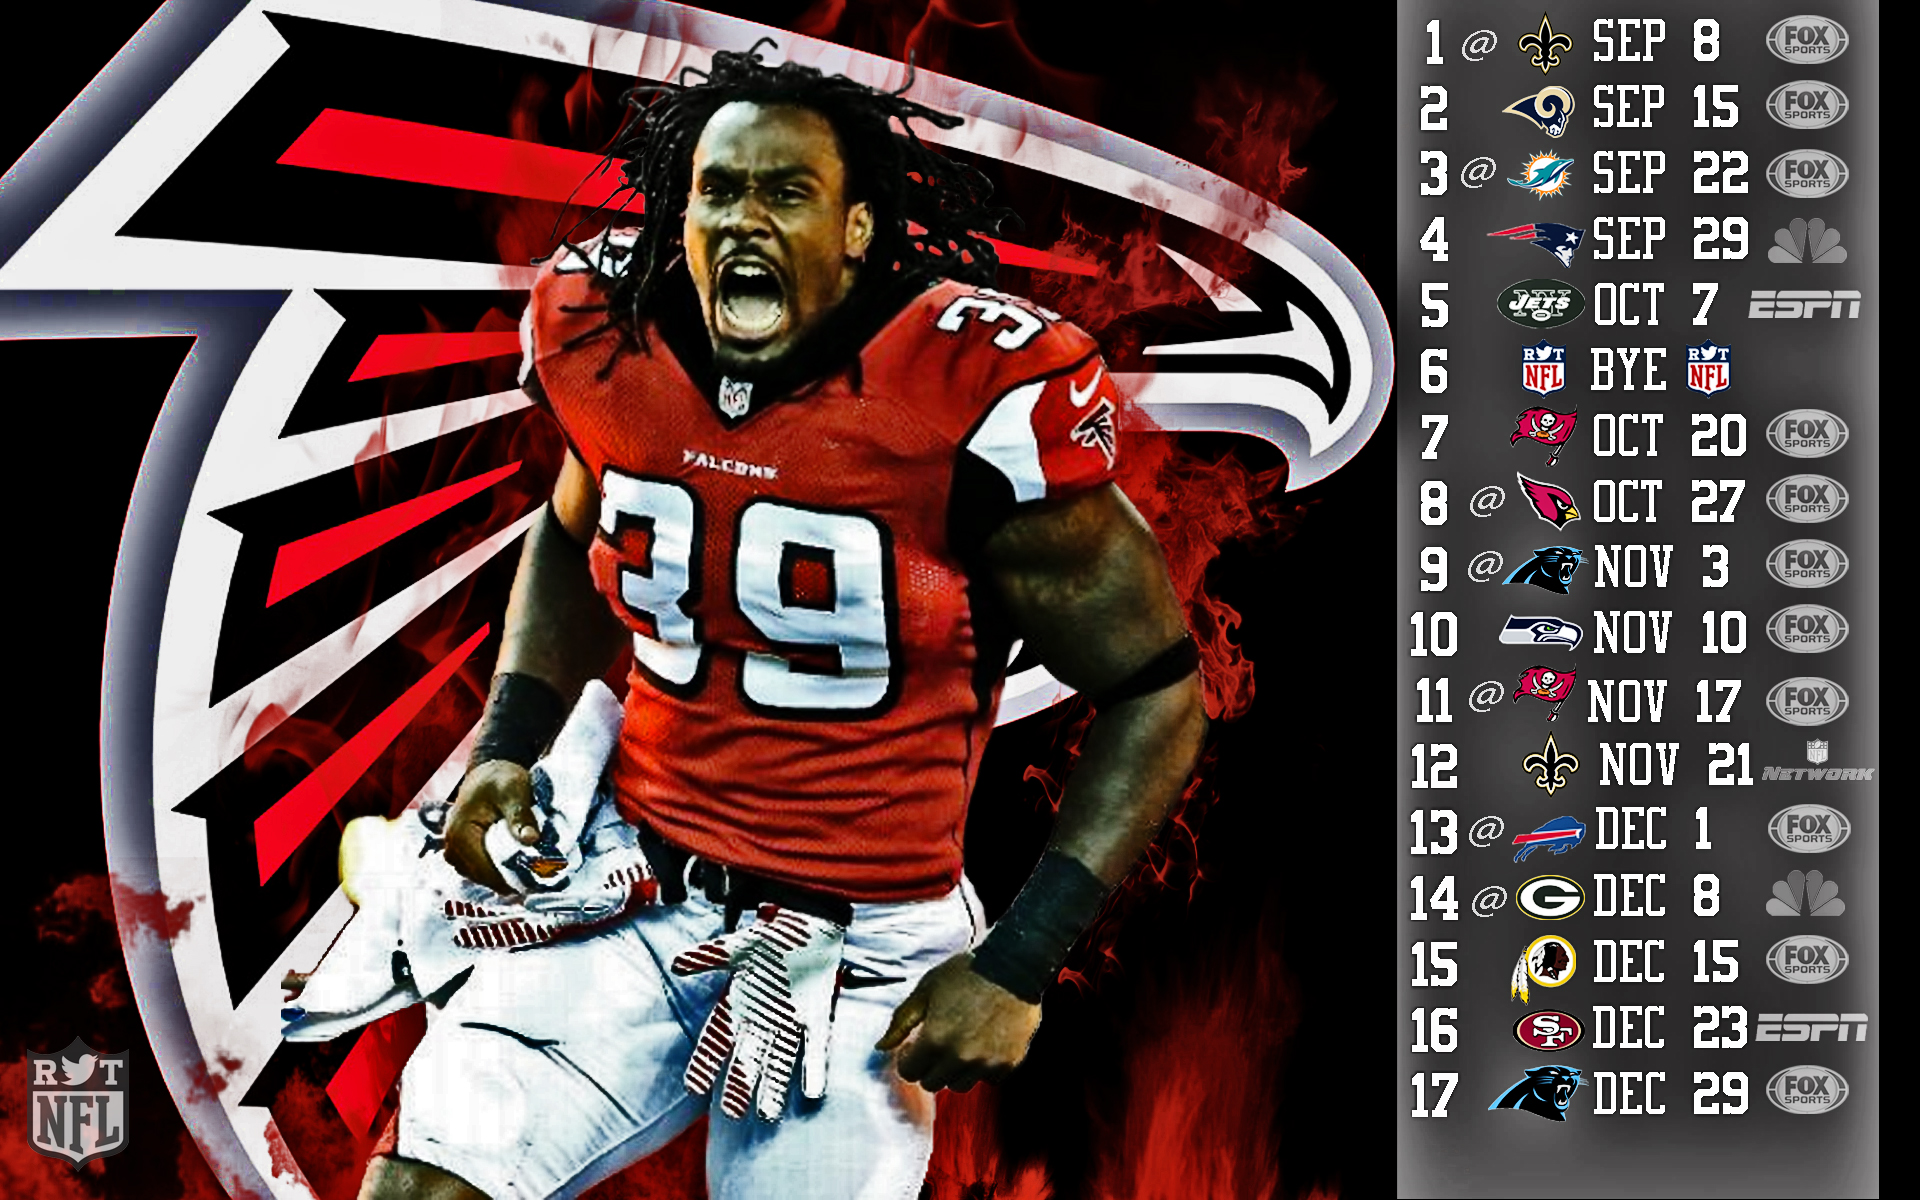 Atlanta Falcons 2018 Wallpaper Hd 64 Images: 2013 Atlanta Falcons Football Nfl G Wallpaper